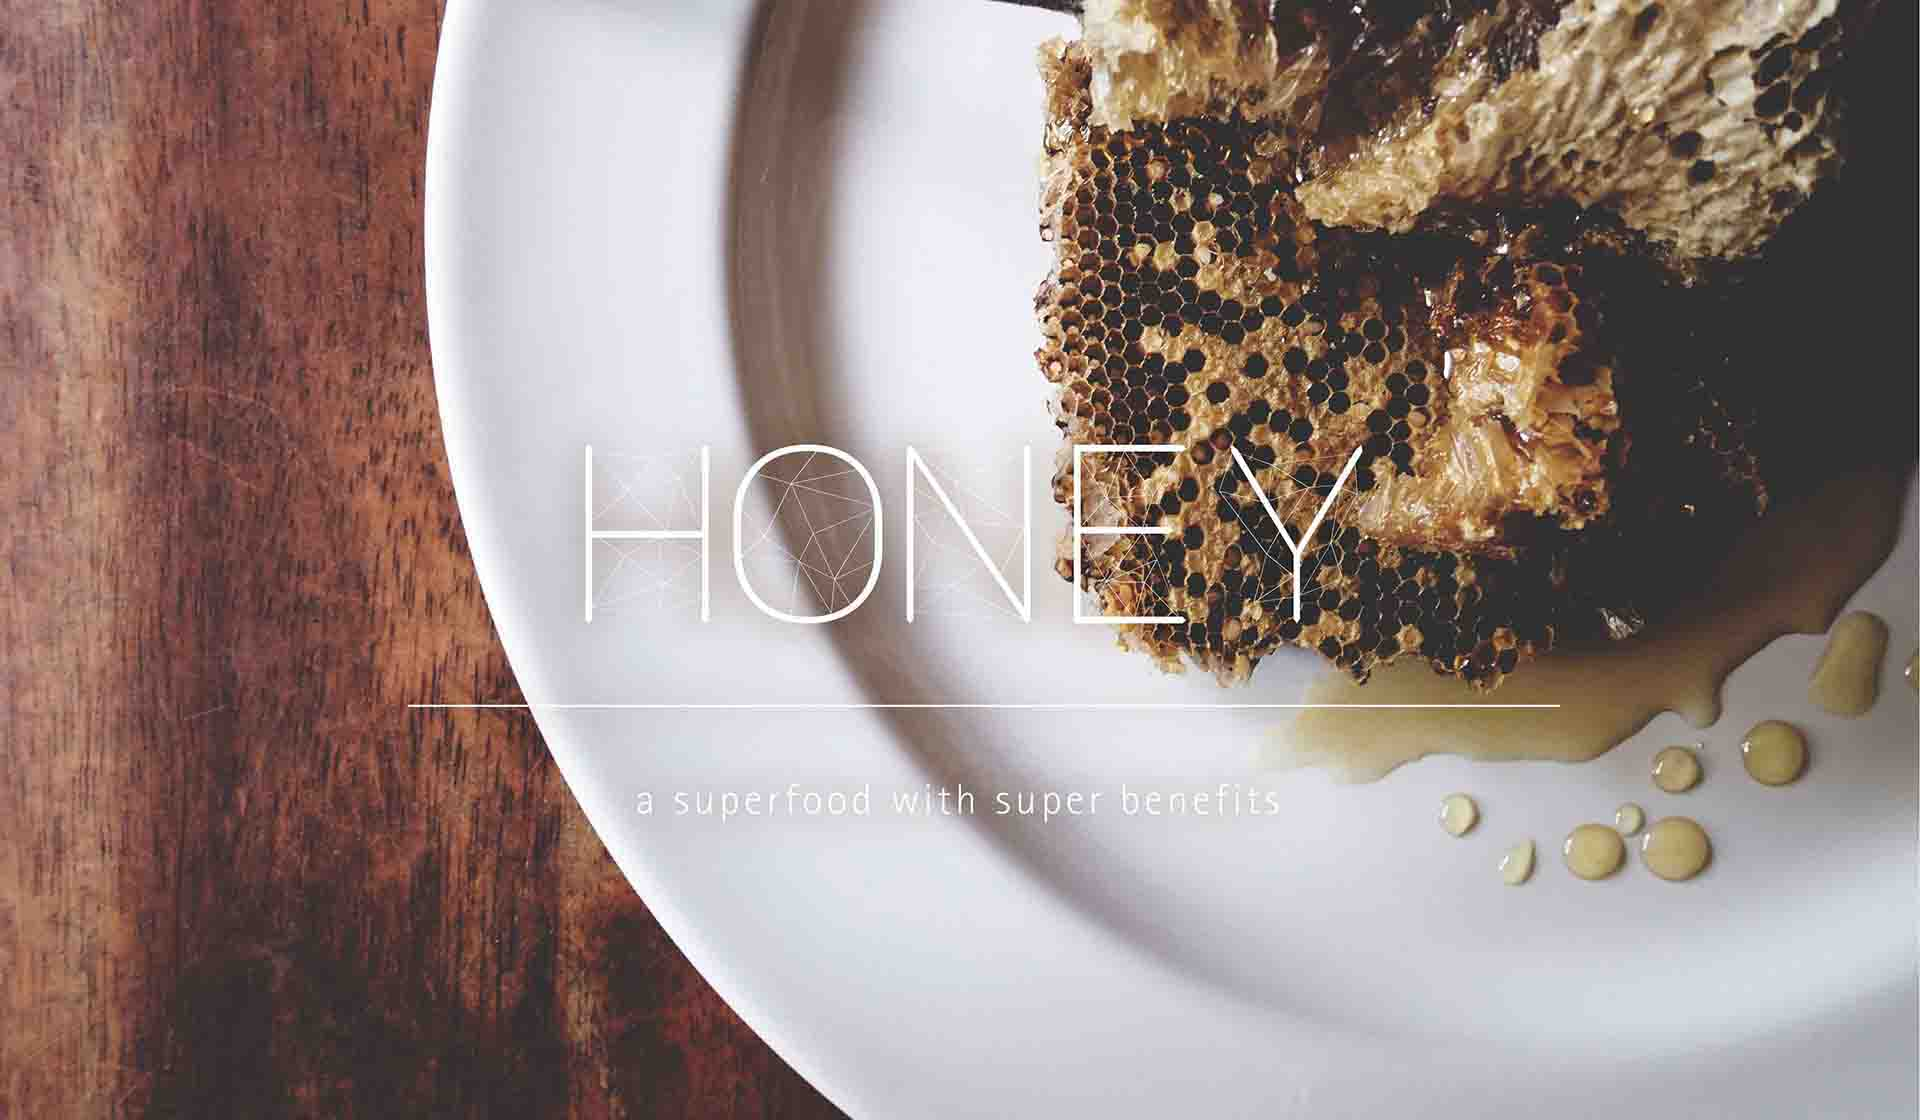 Is Honey A Superfood?